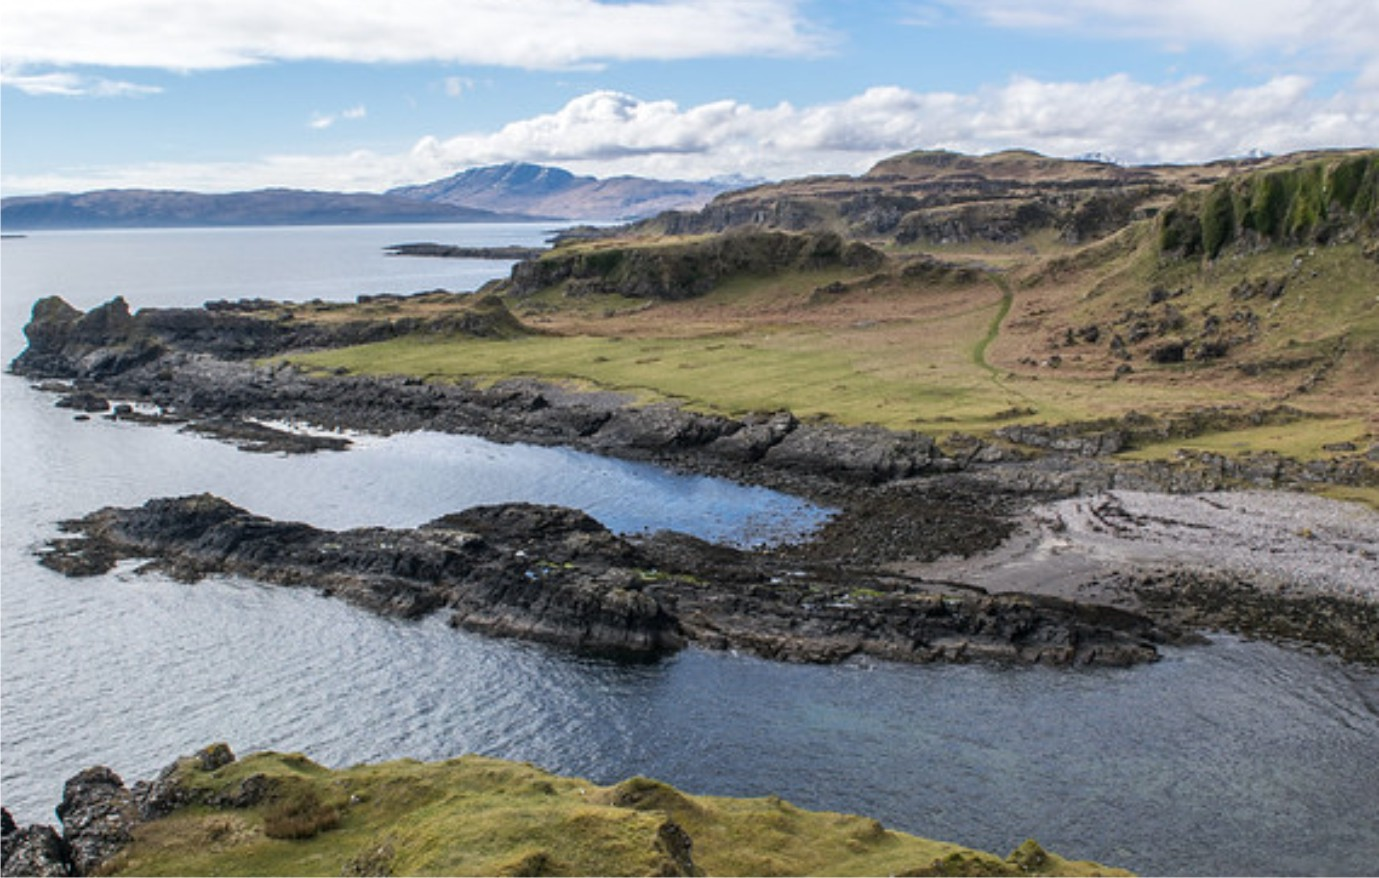 Green grass meets rocky shores and cliffs overlooking the sea on the coast of Kerrera